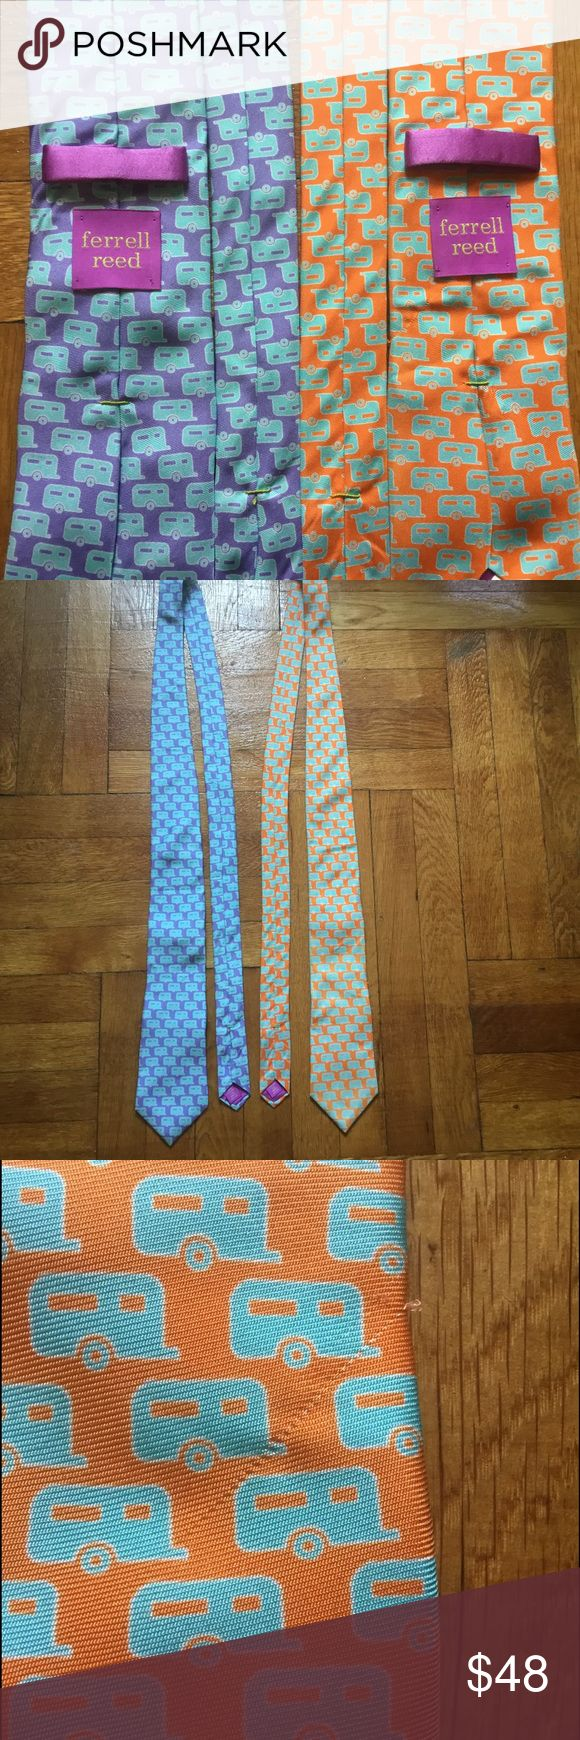 2 Ferrel Reed ties tommy boss armani suits 2 ties in great condition. Orange tie has a slight flaw which is shown in the last pic. Still a DEAL. Accessories Ties